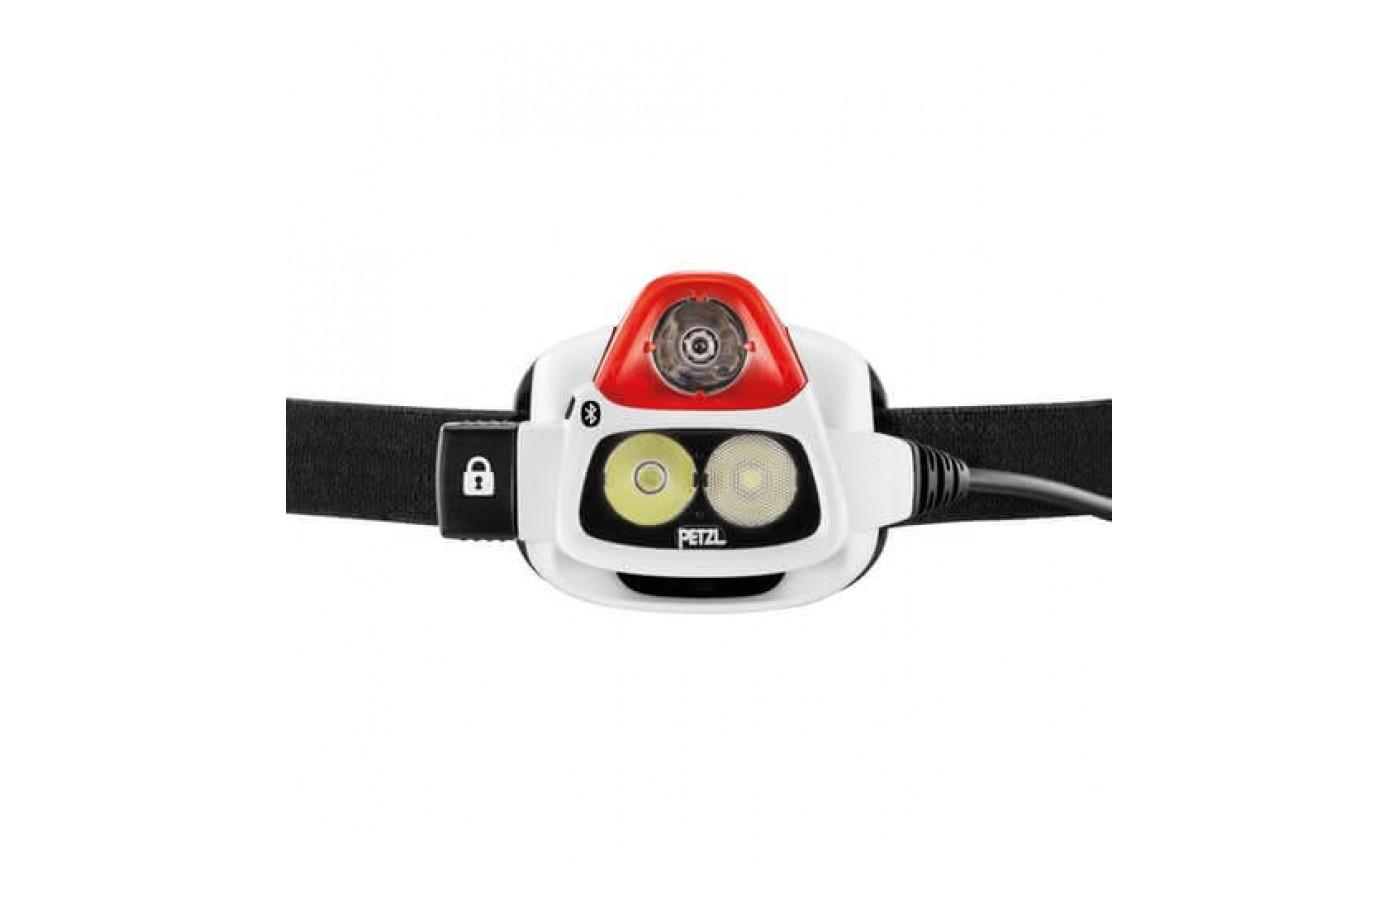 The Petzl NAO+ Headlamp can produce a wide beam of light or a spotlight.